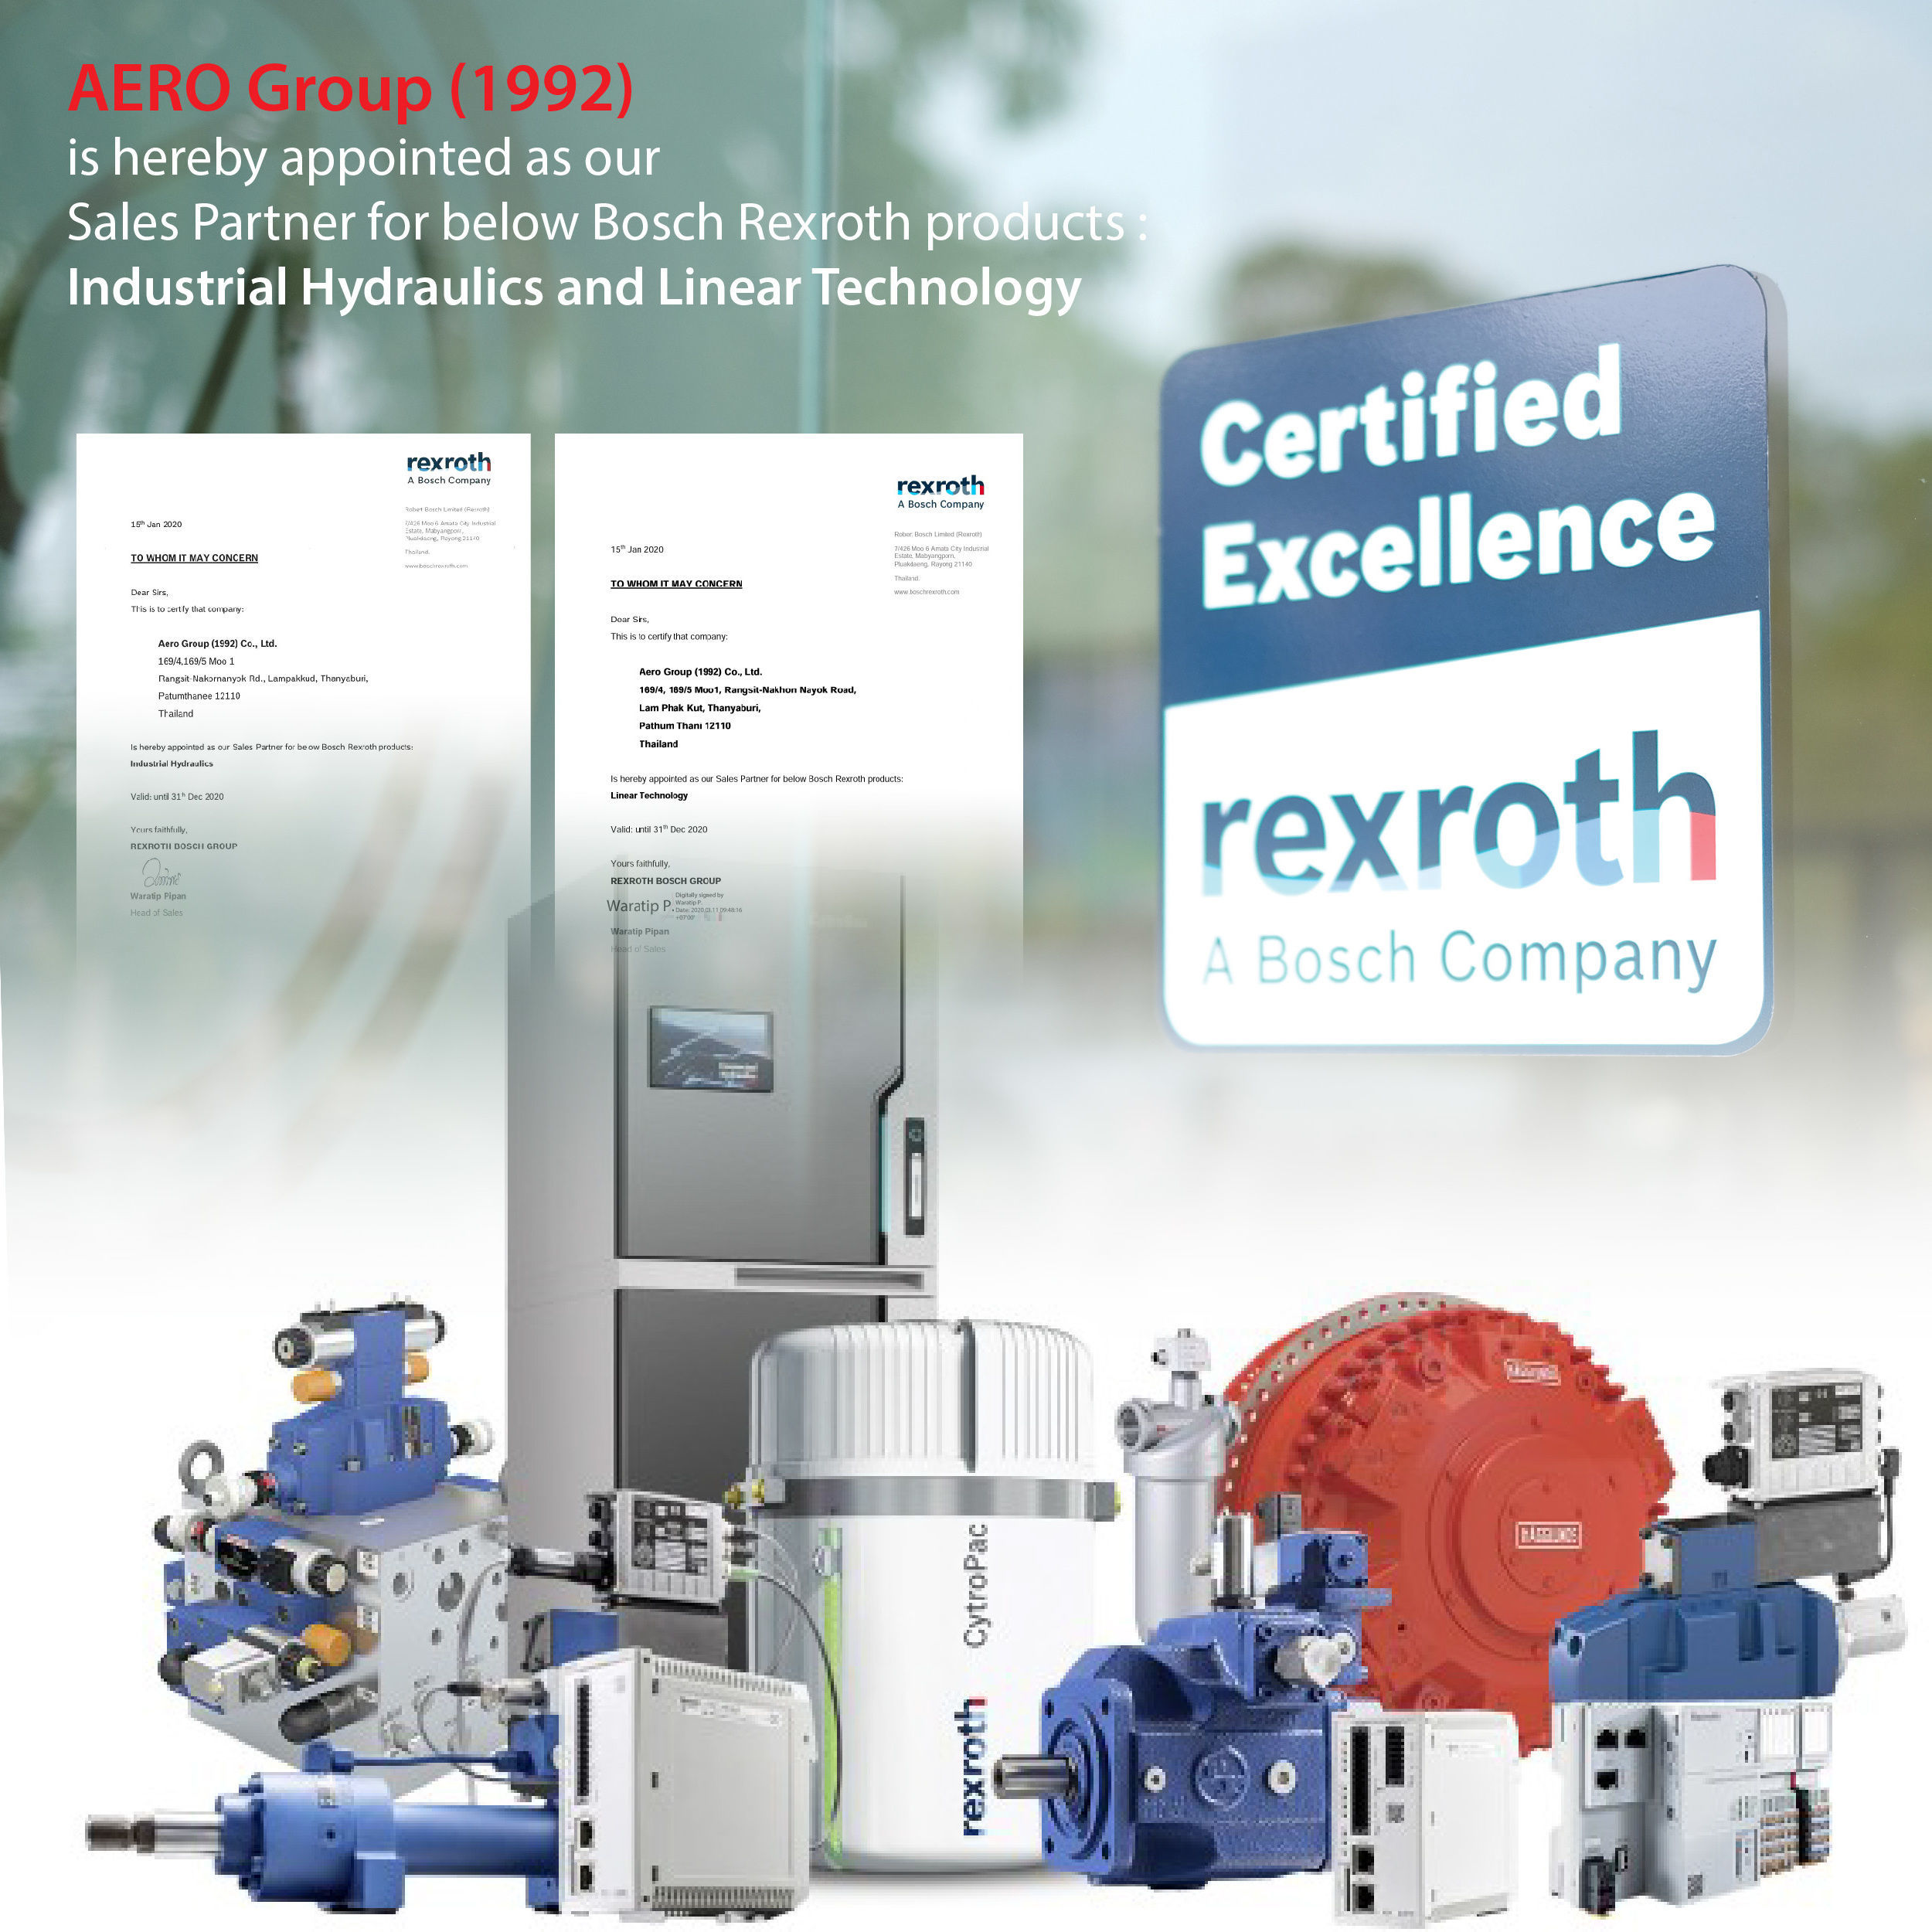 AERO Group (1992) is hereby appointed as our Sales Partner for below Bosch Rexroth products : Industrial Hydraulics and Linear Technology